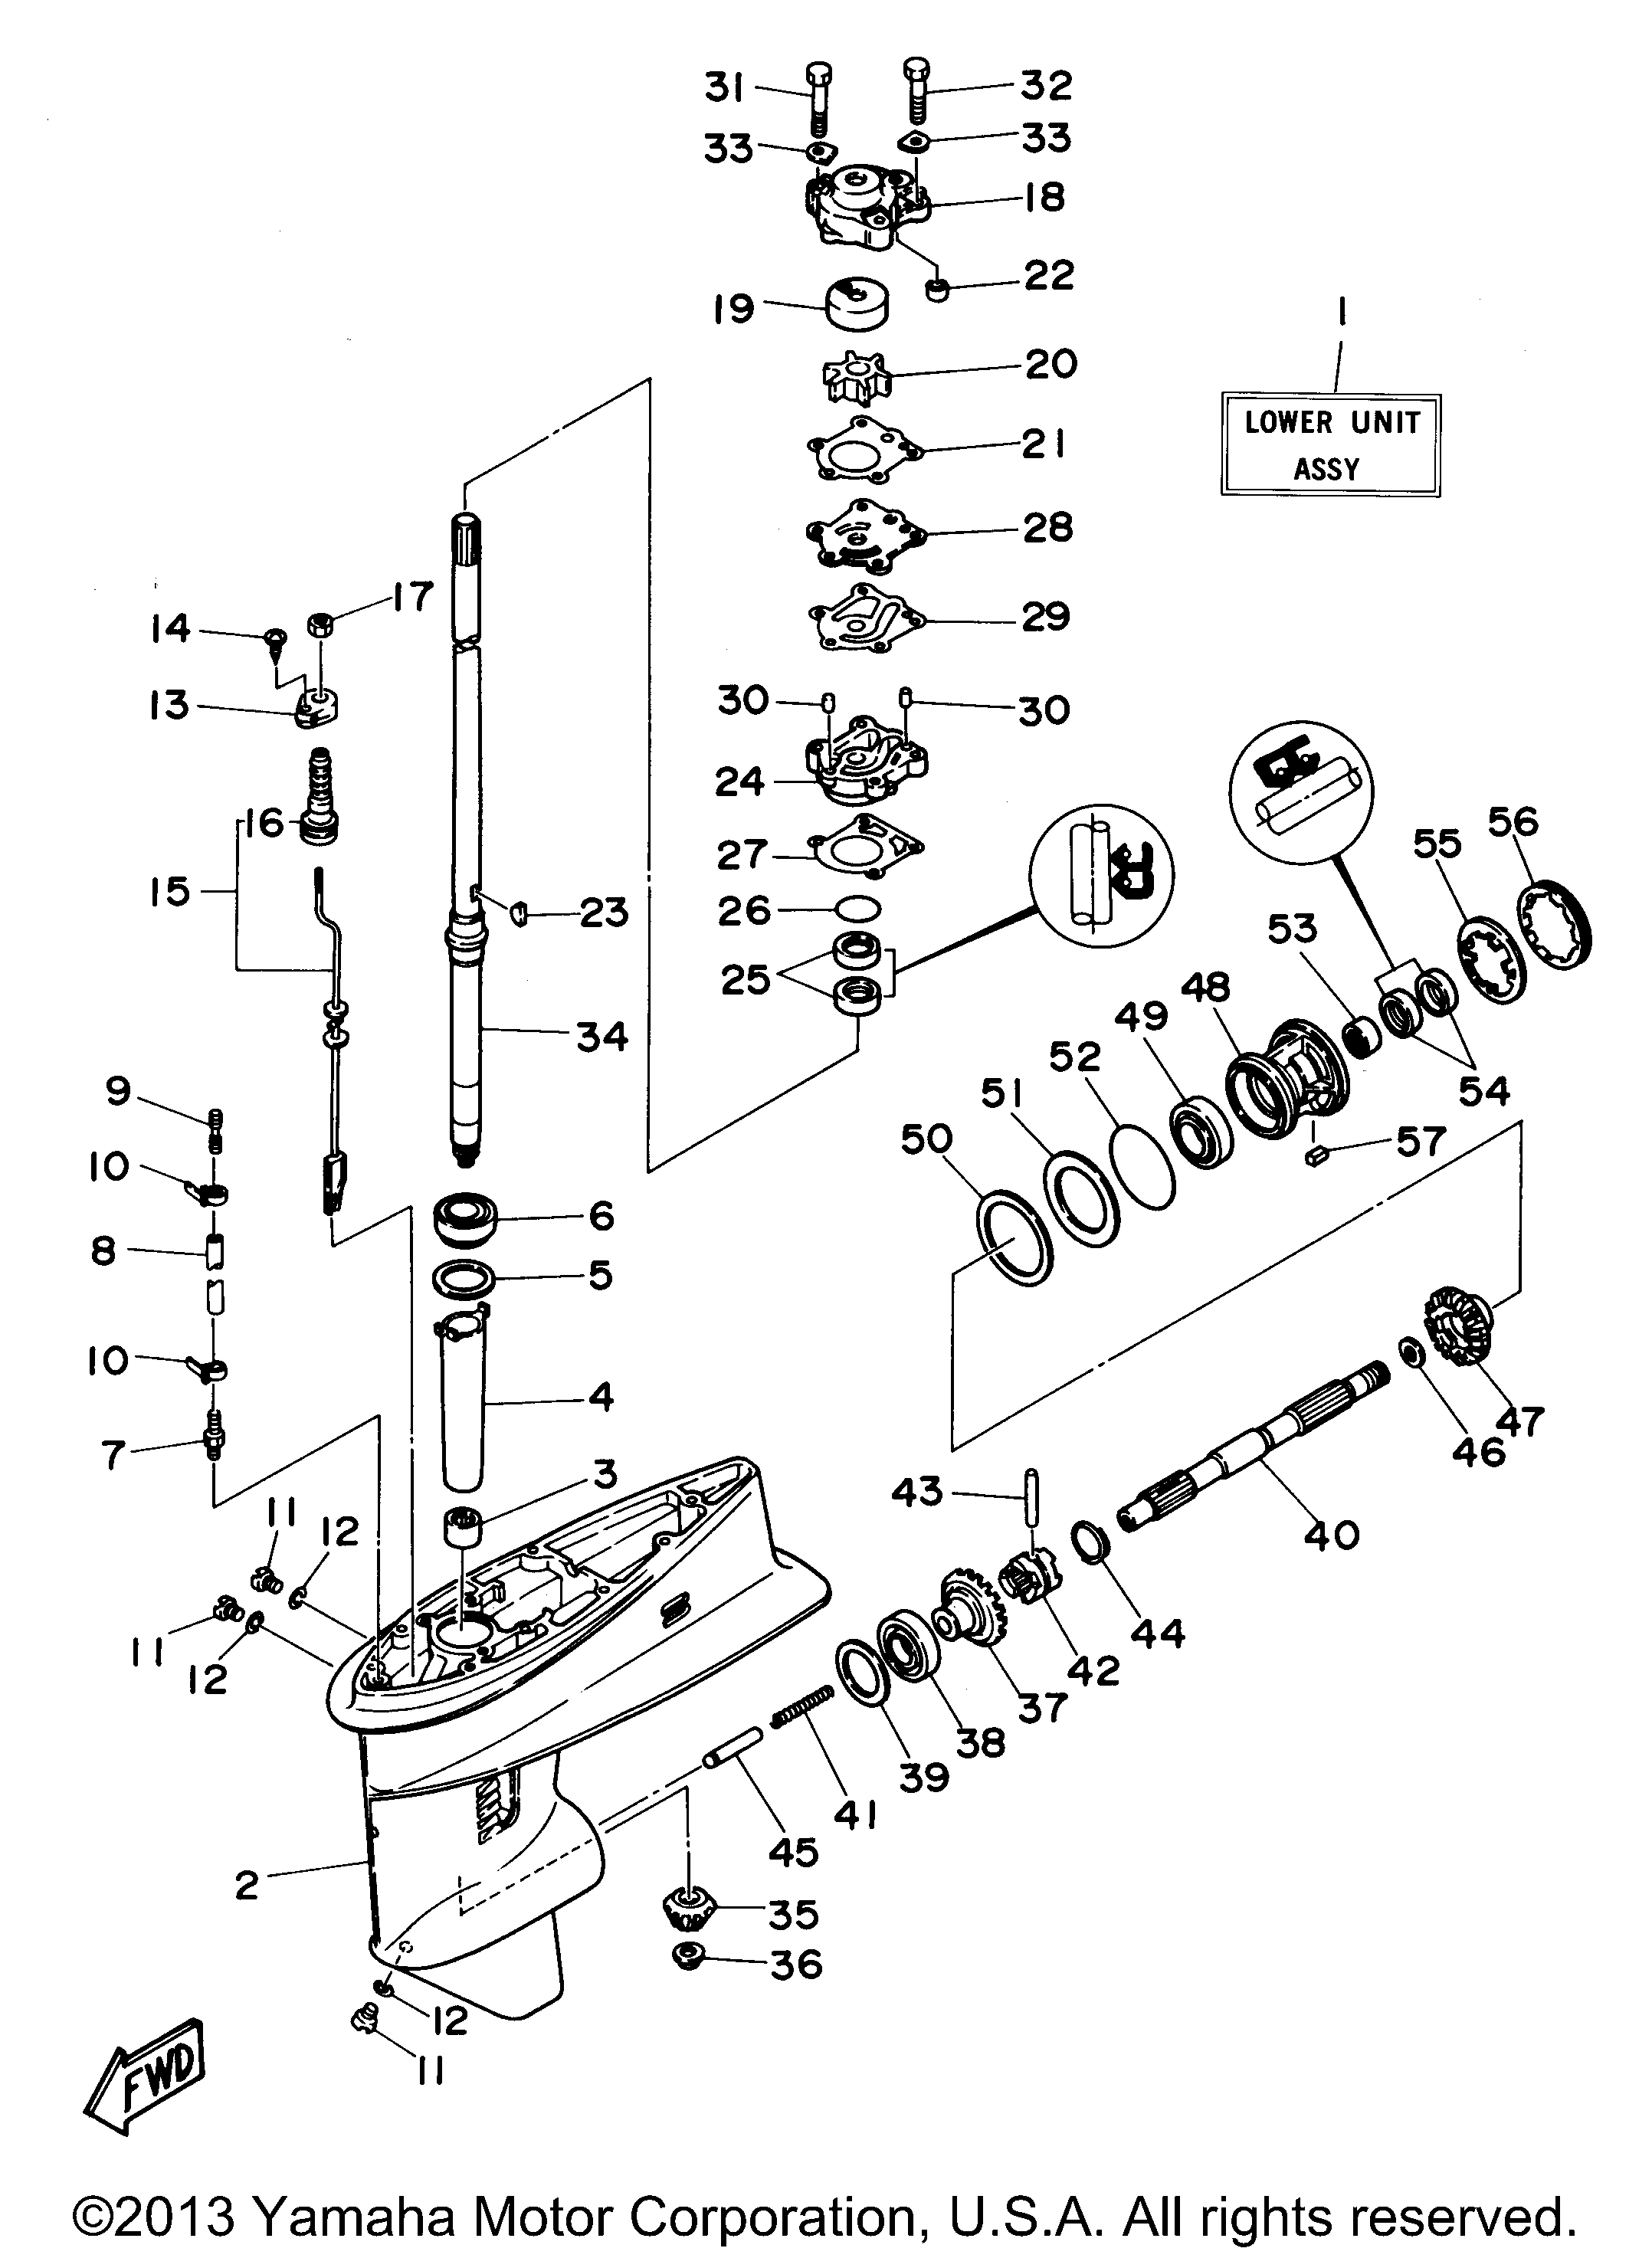 1992 suzuki quadrunner 250 engine diagram  suzuki  auto